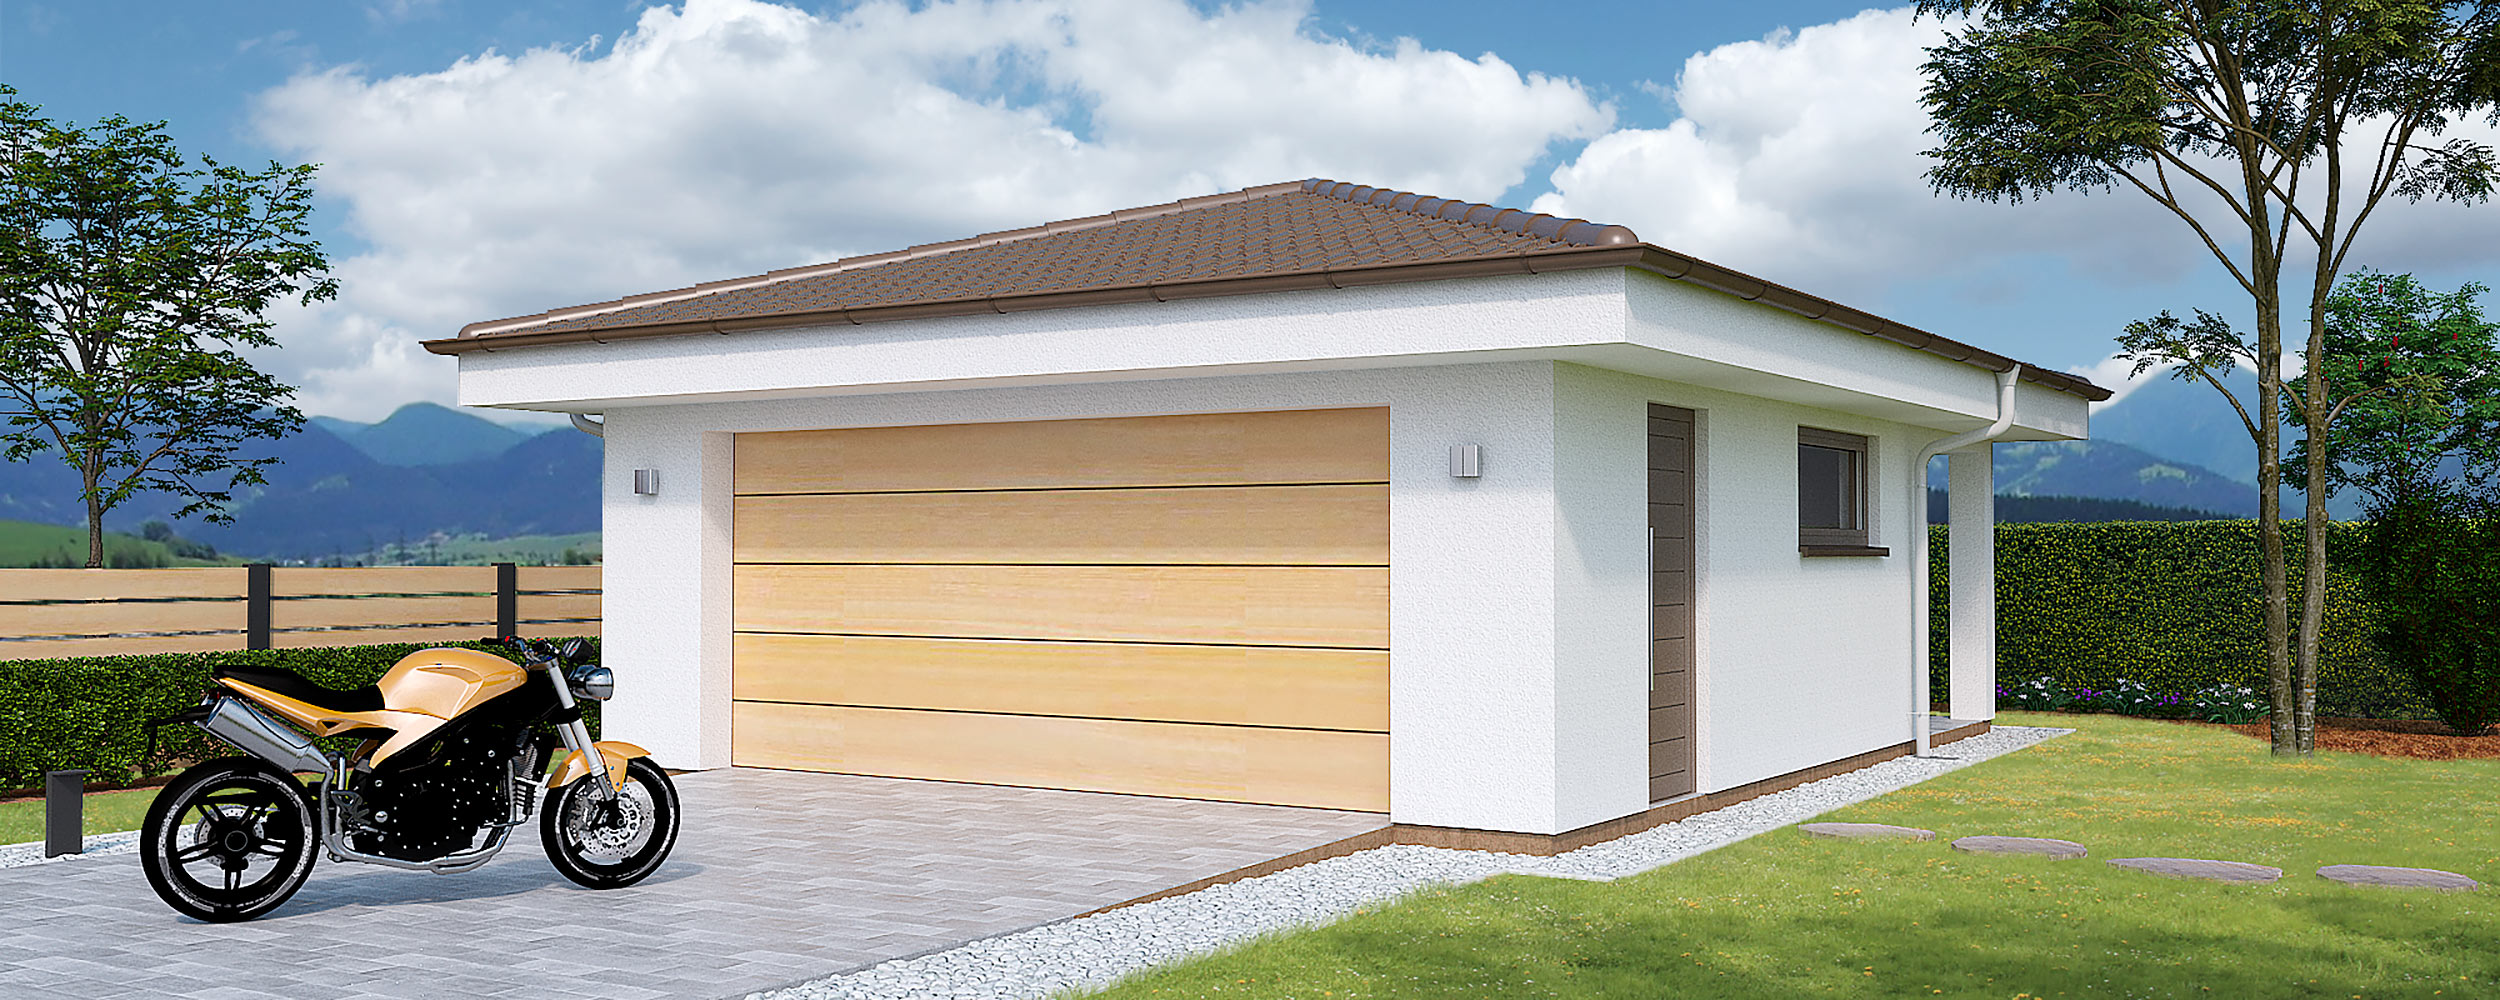 Double garage with back storage